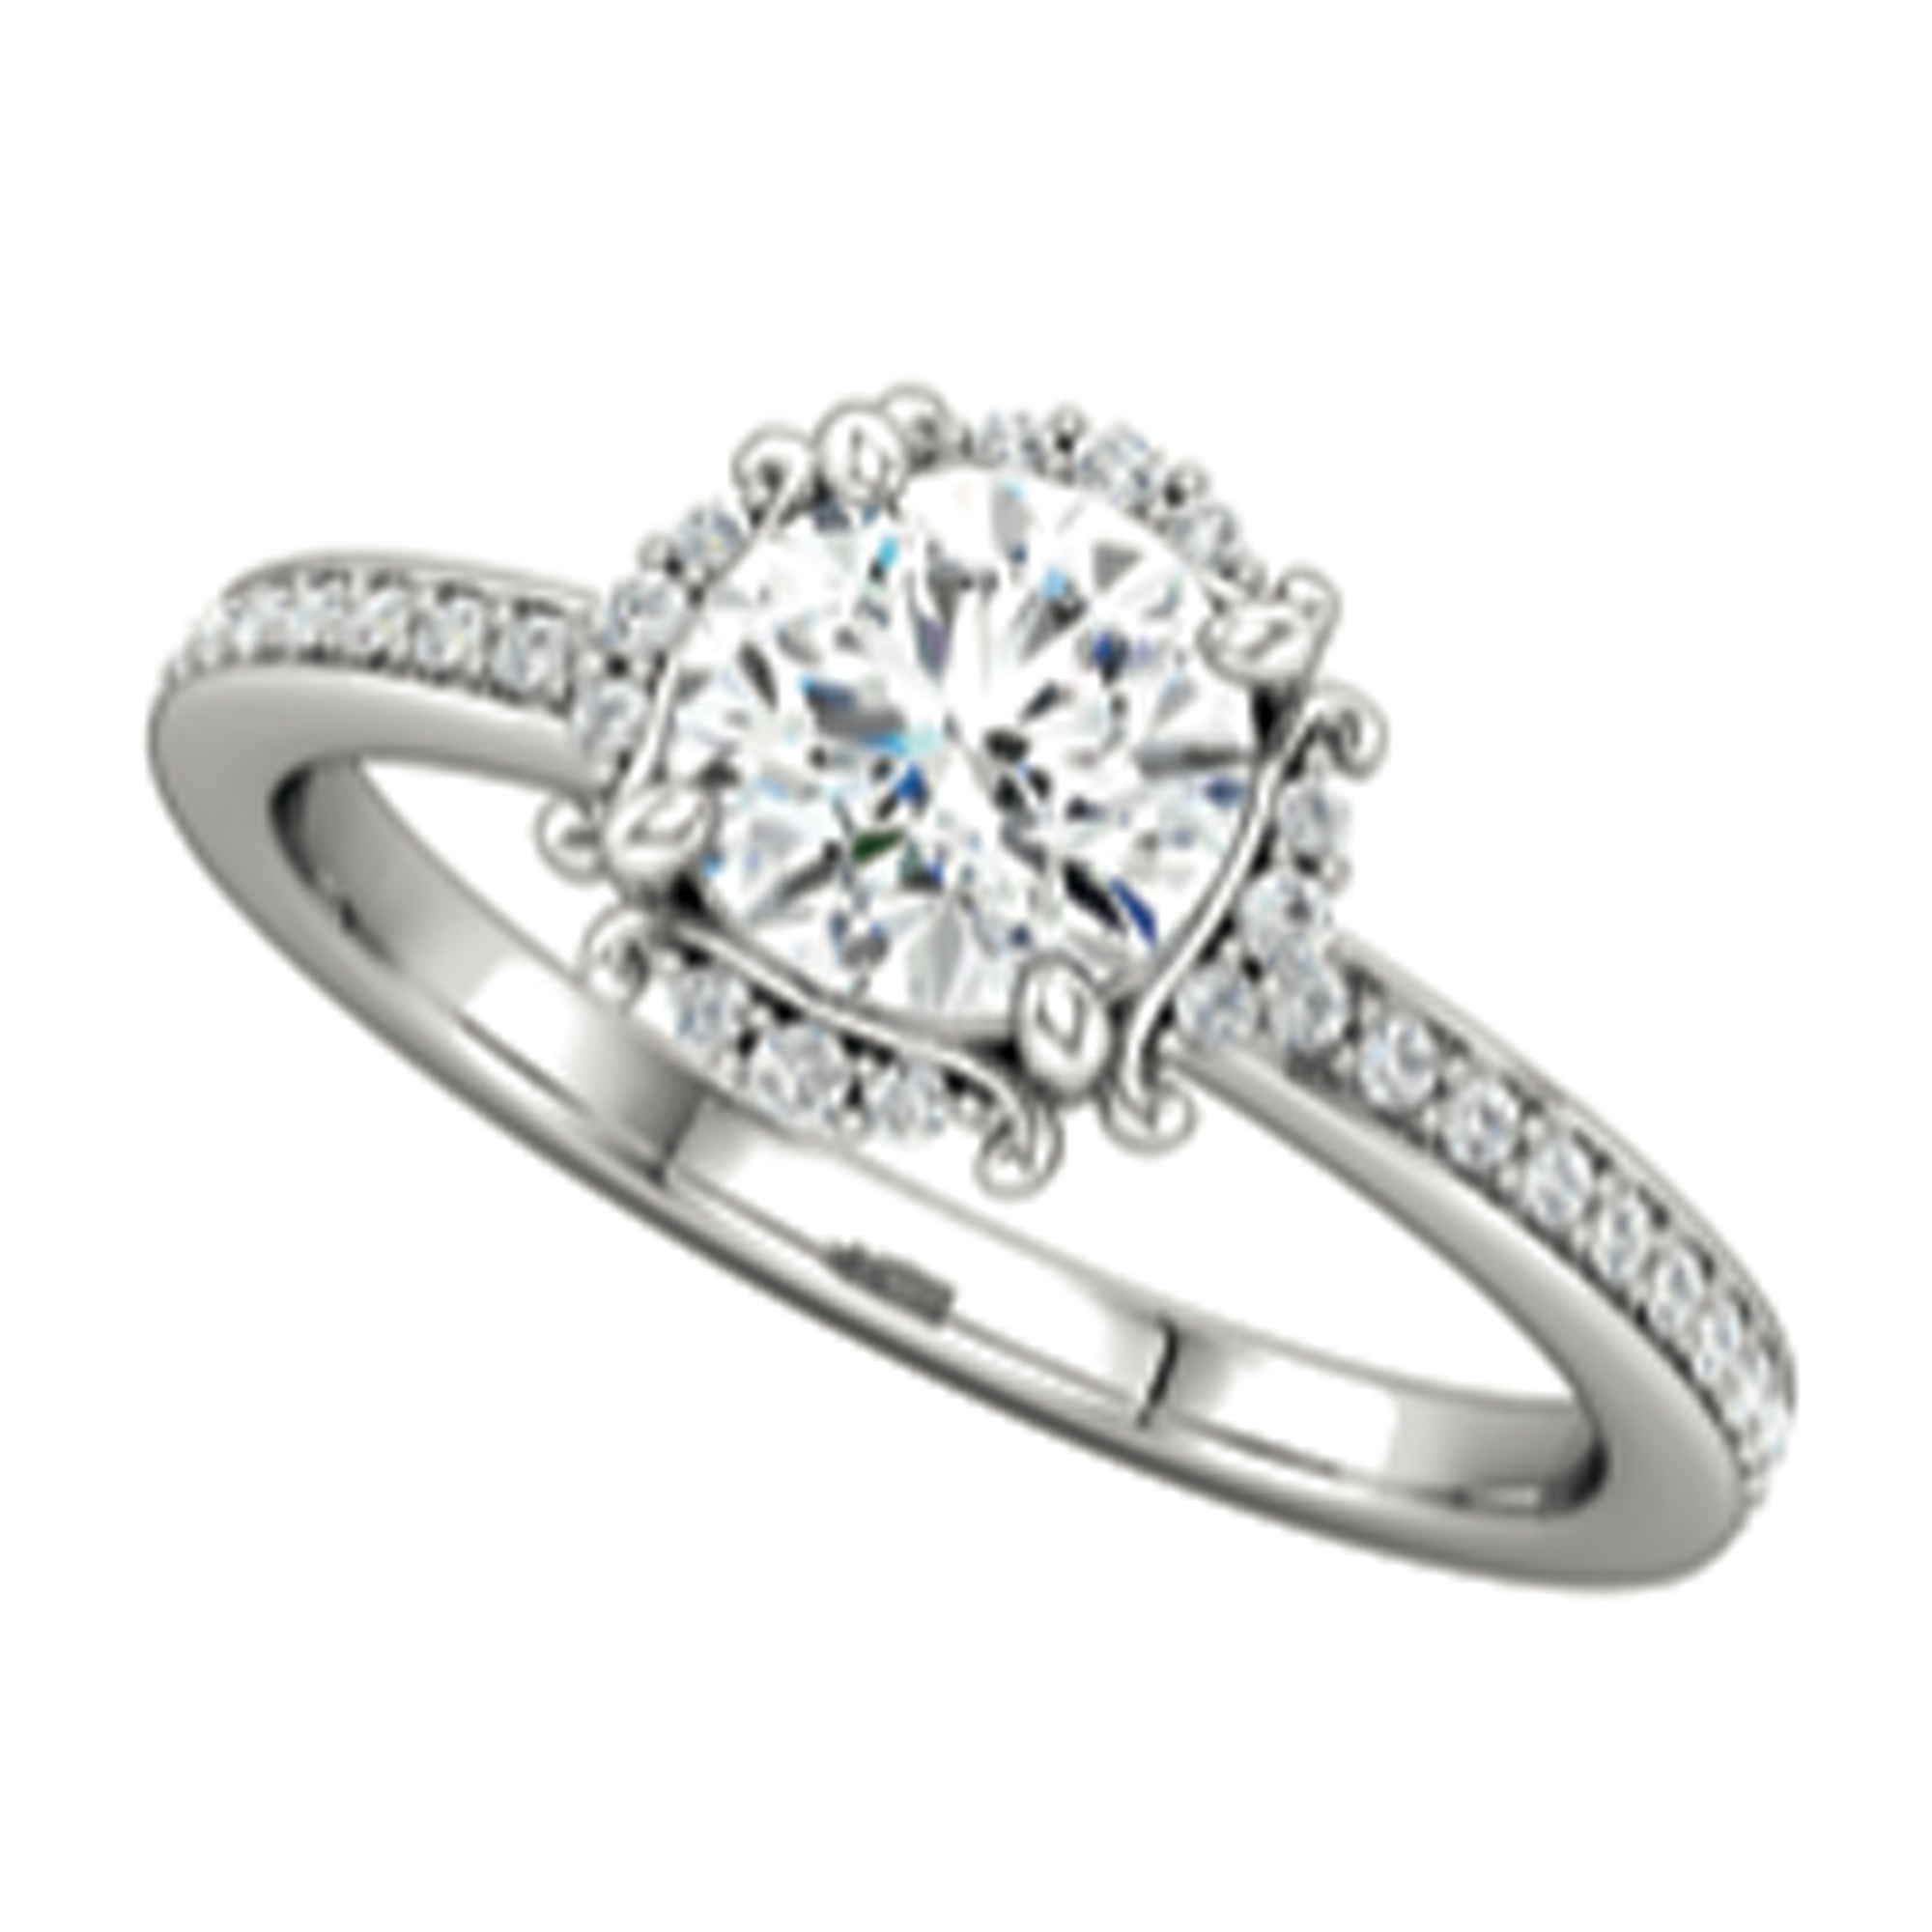 Sparkle Cut Diamonds – Scalloped Halo Engagement Ring | Platinum With Regard To Best And Newest Square Sparkle Halo Rings (View 20 of 25)